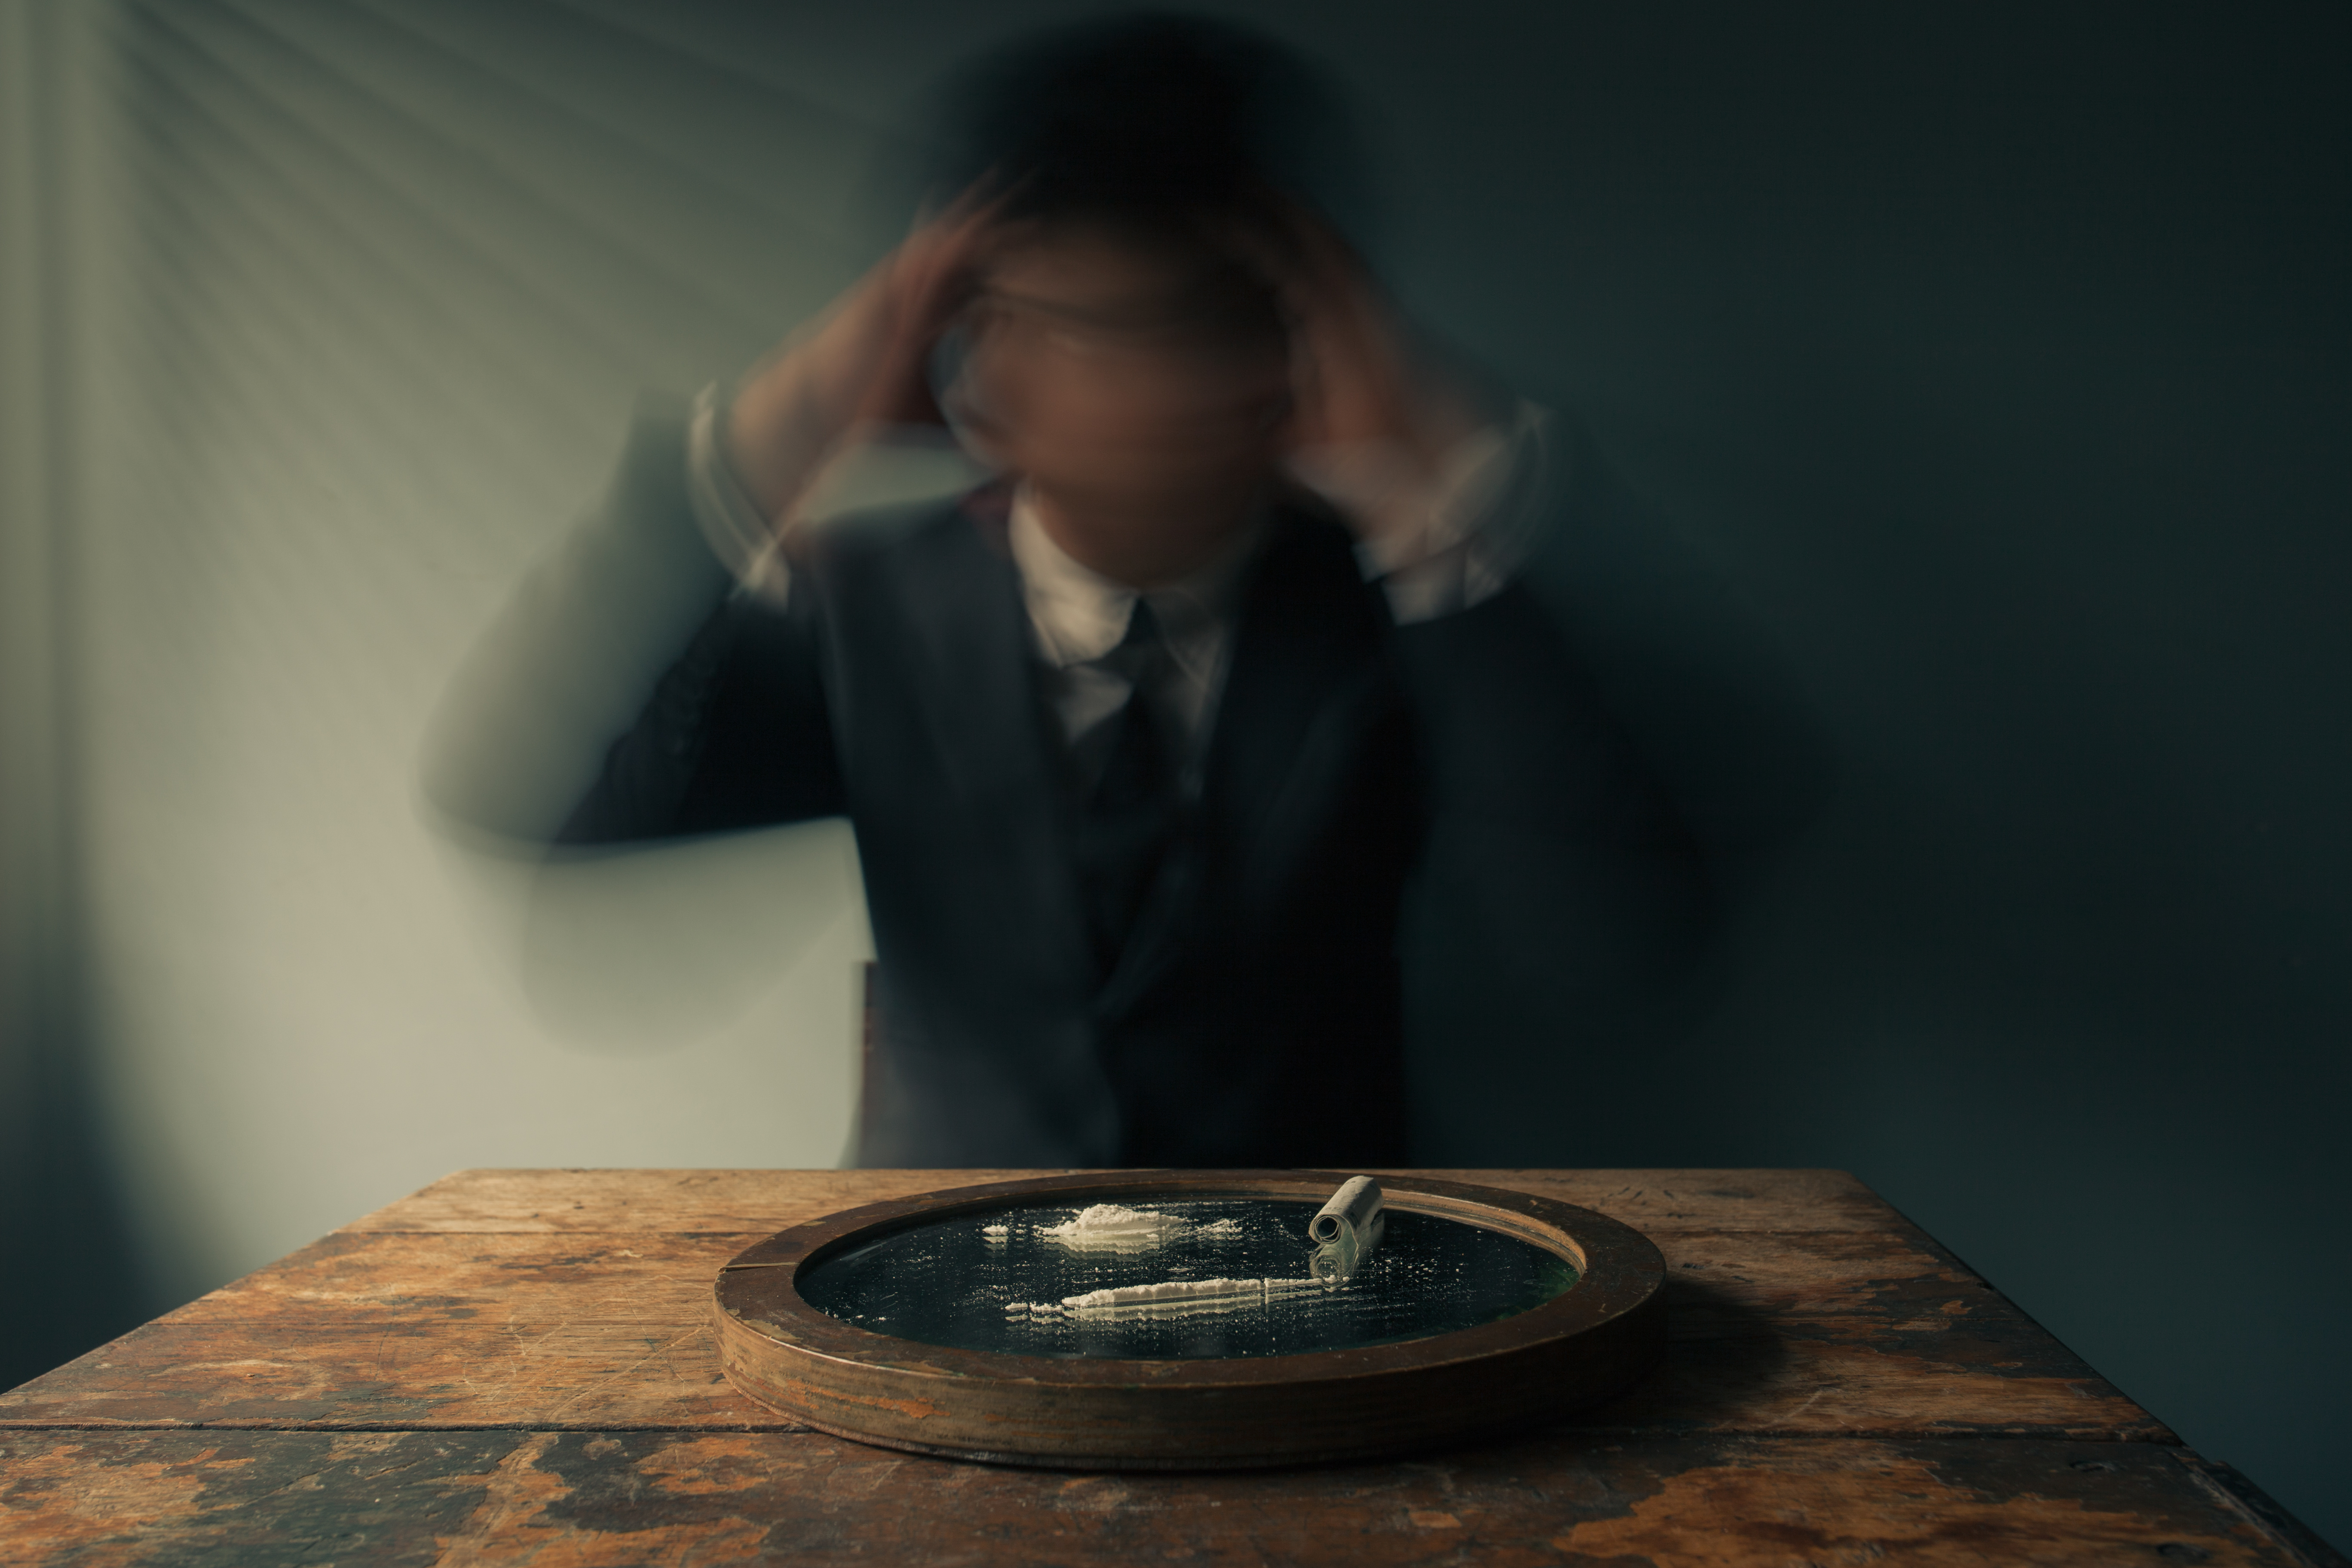 Cocaine addiction: signs and symptoms